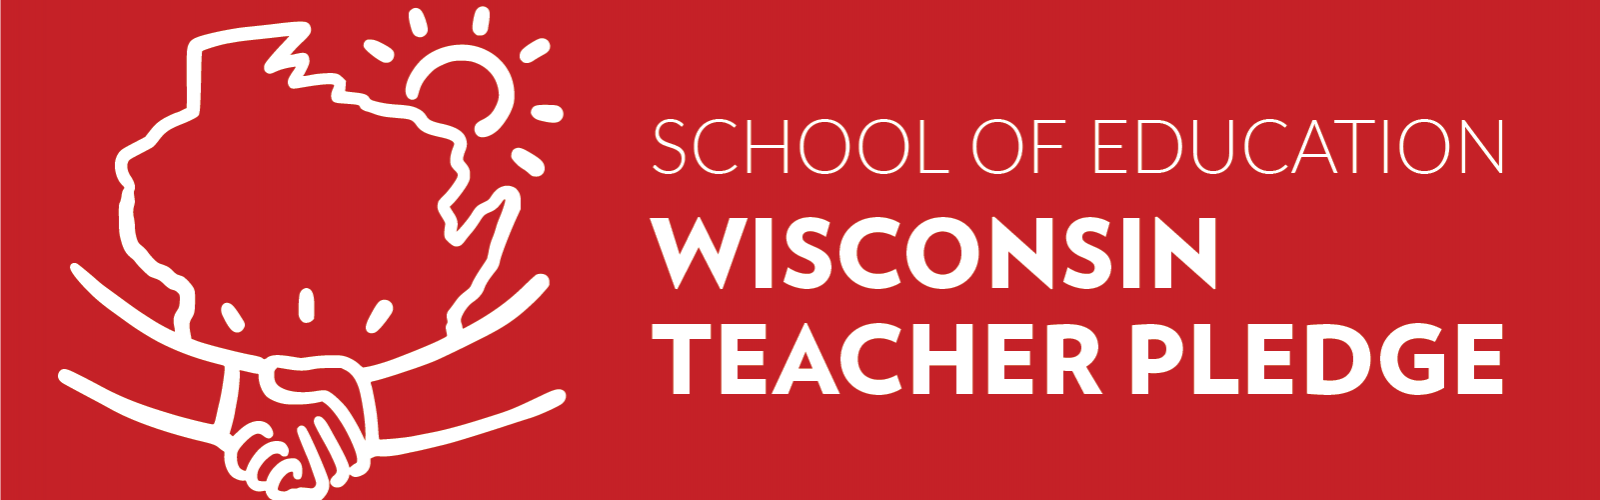 school of education wisconsin teacher pledge with shaking hands image